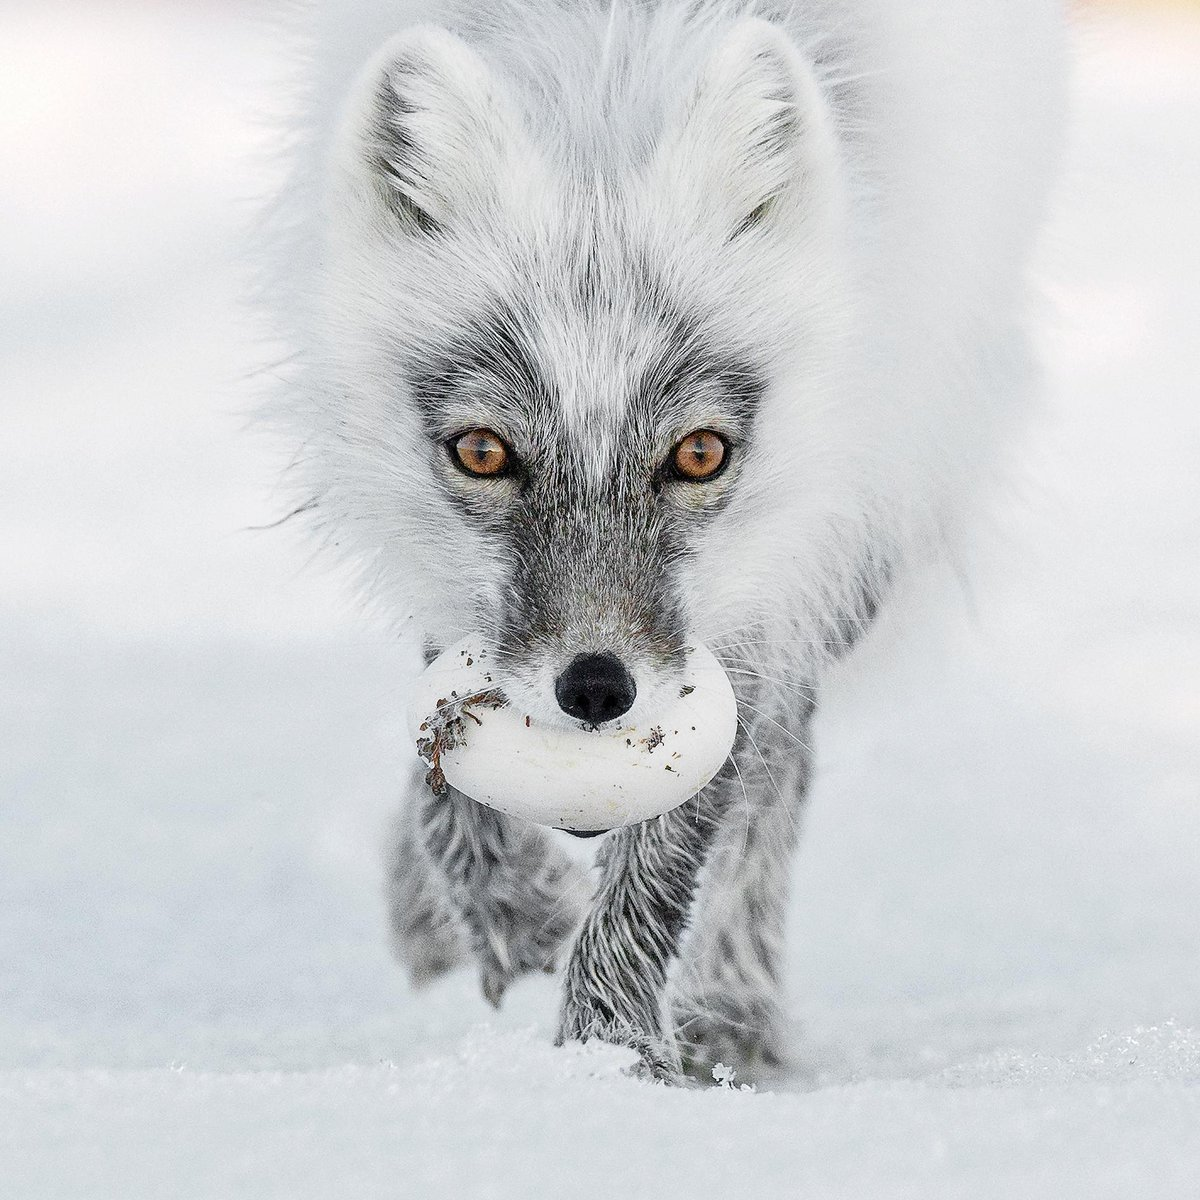 """""""Arctic foxes will steal and hide snow goose eggs deep in the snow of Wrangel Island, Russia. The frozen eggs can last up to a year in the snow, just enough time for a growing baby fox to find an egg-cellent spring snack."""" 🥚 📷+ text by Sergey Gorshkov"""